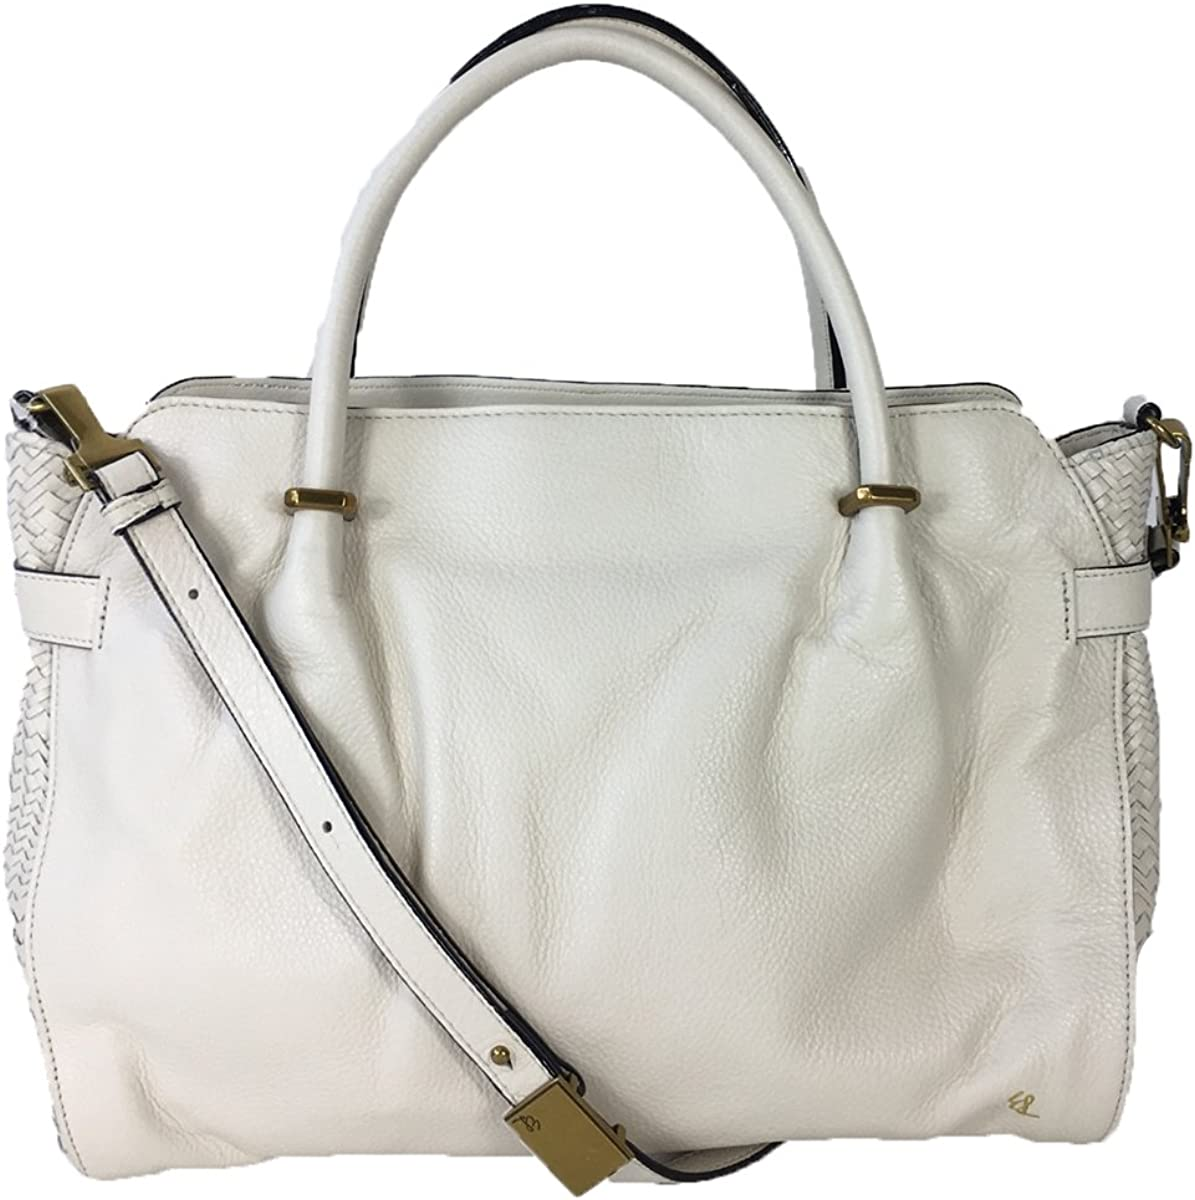 Elliott Lucca Bali 89 Lisette Shopper Top Handle Bag